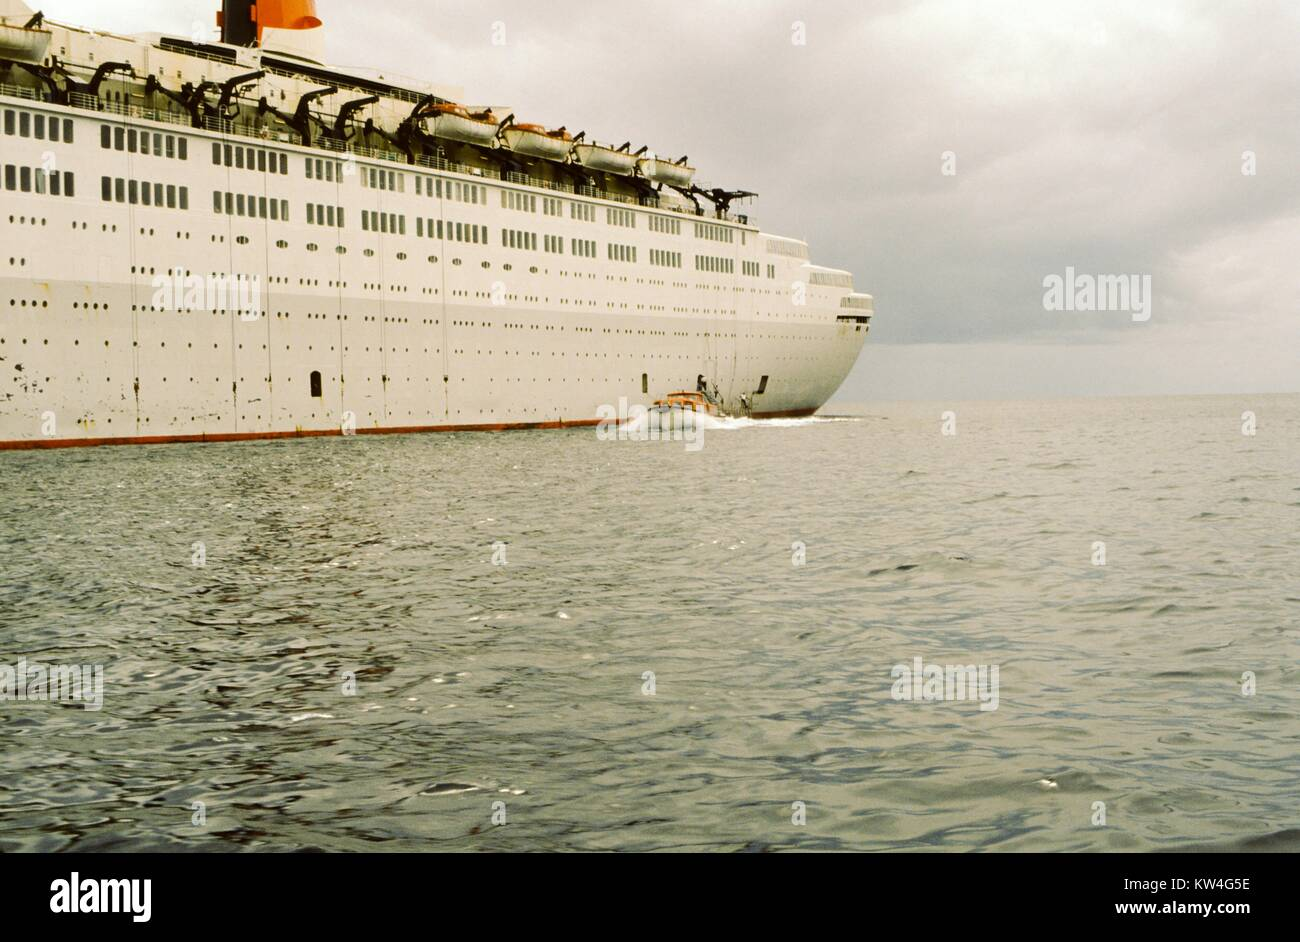 Aft portion of the Cunard Line's Queen Elizabeth 2 cruise ship, with a small motor yacht approaching, at sea, 1975. Stock Photo